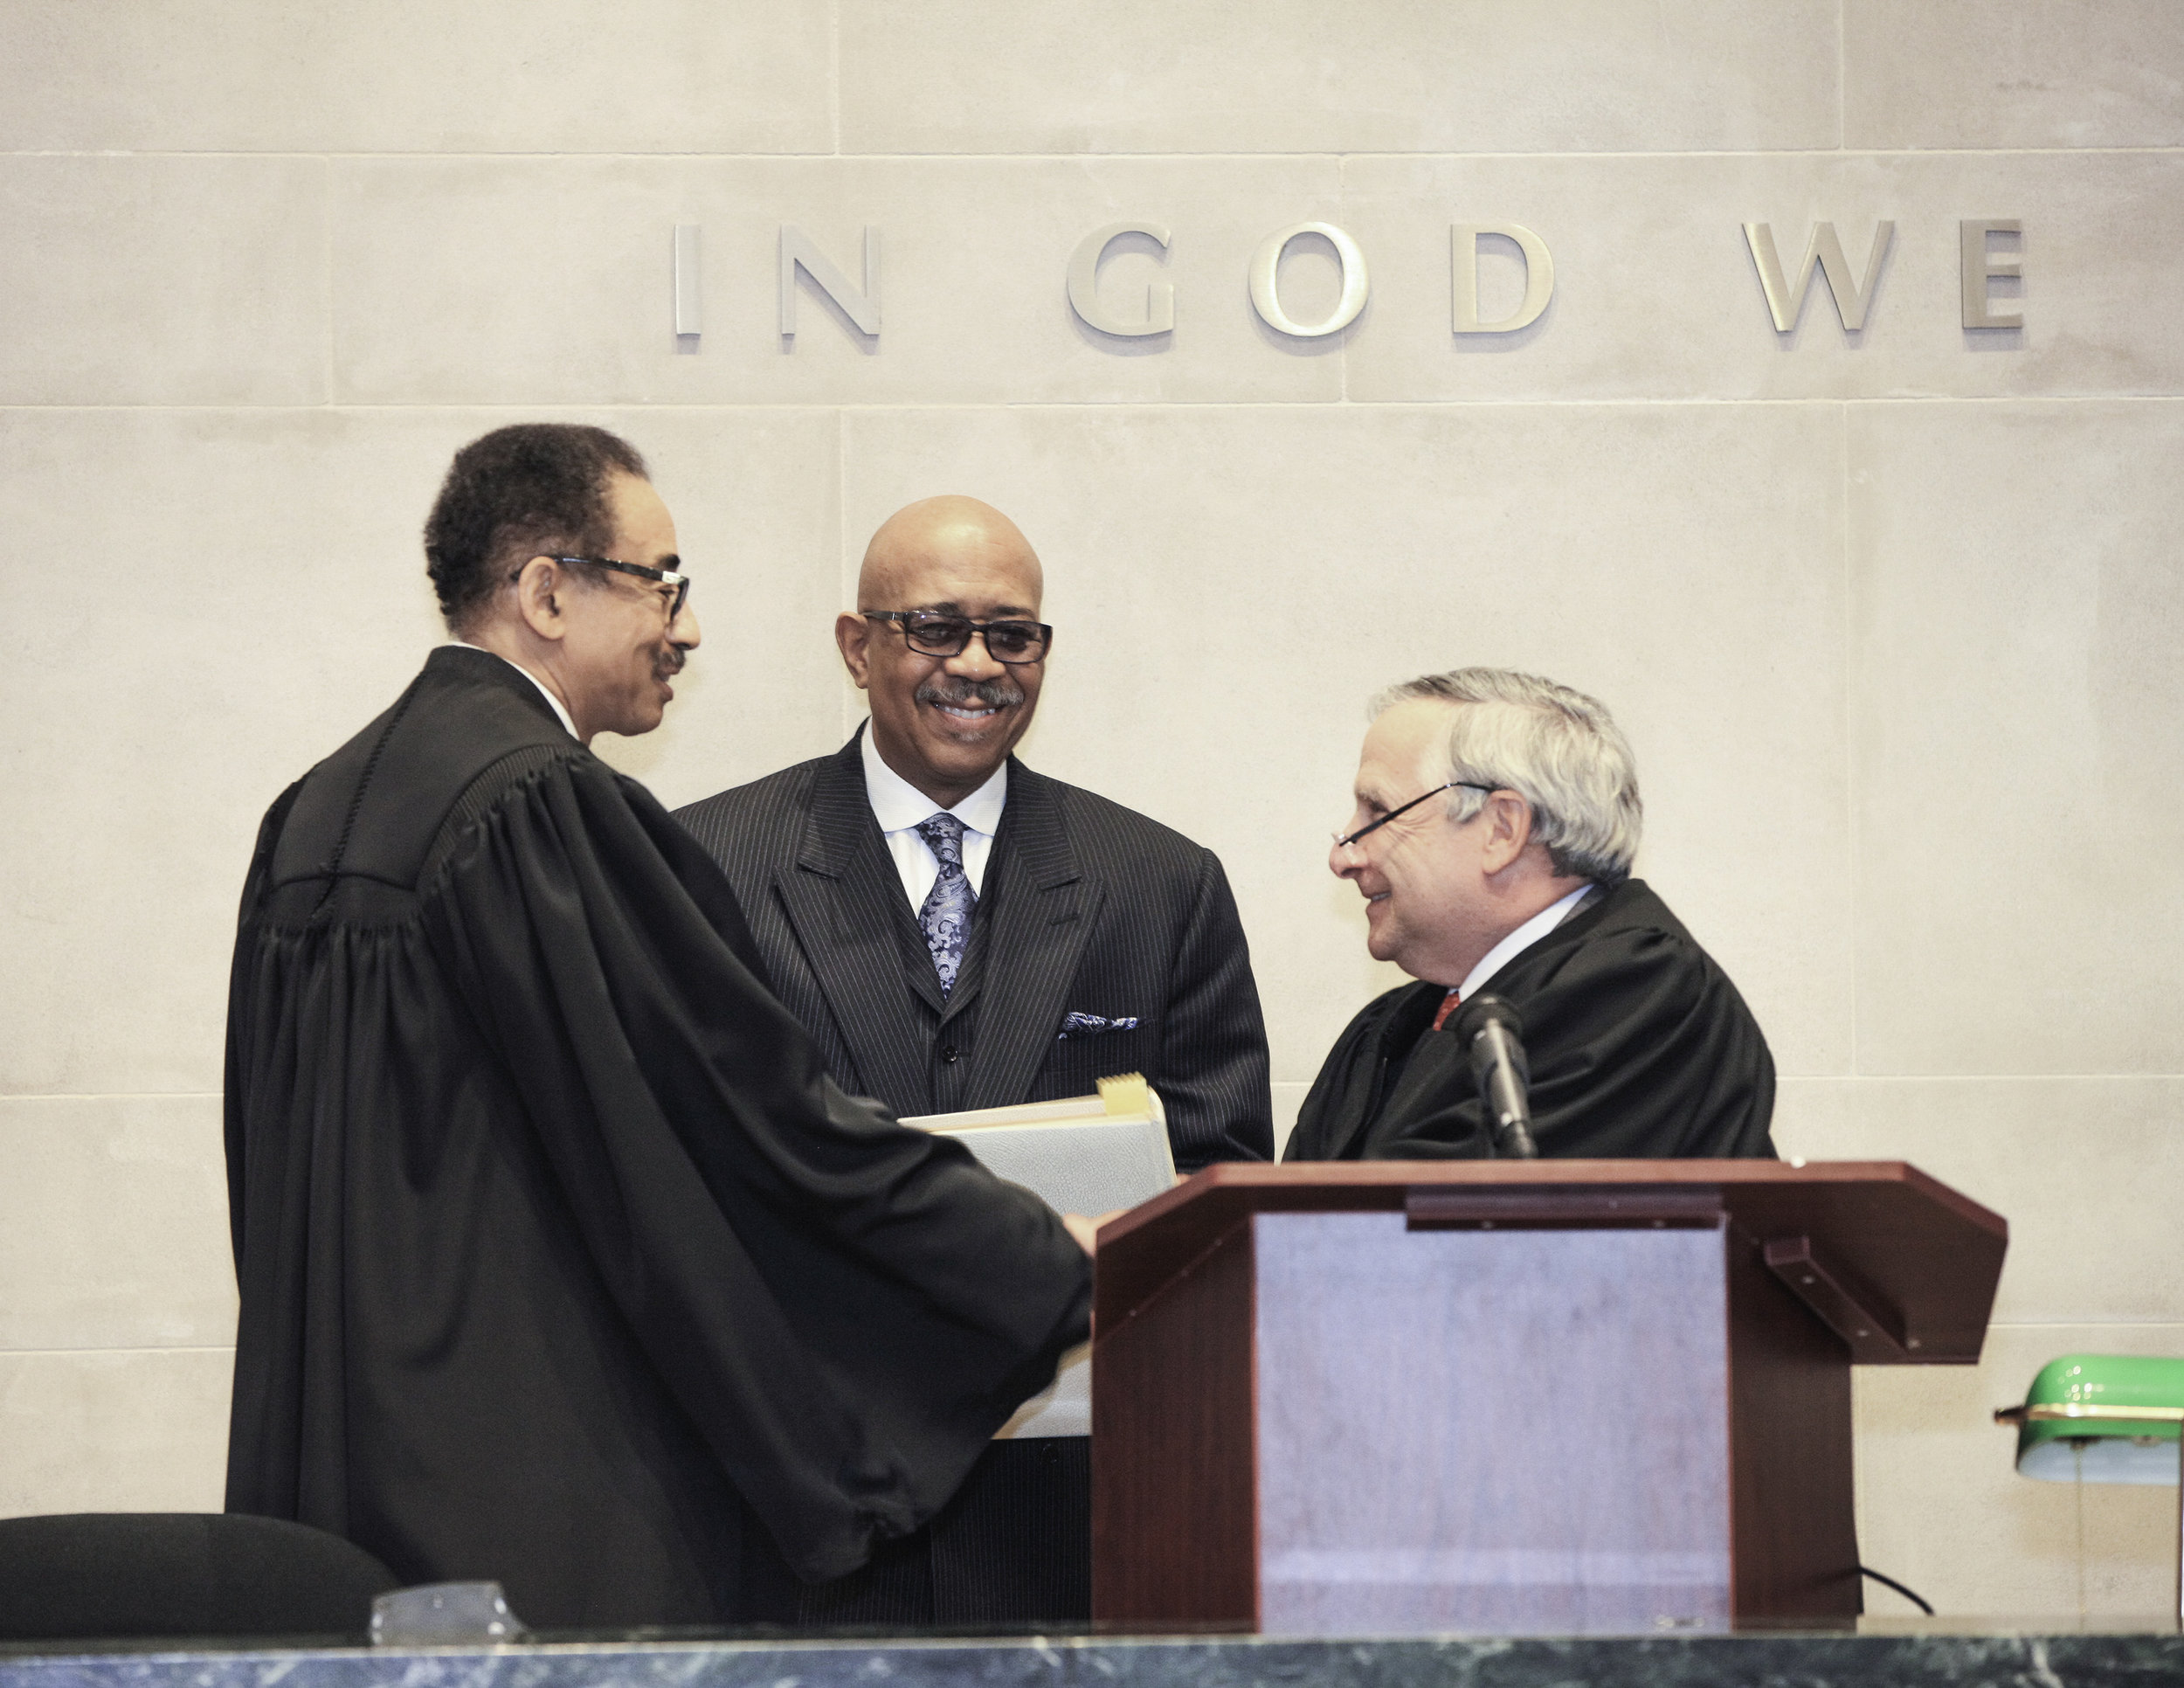 Newly elected Civil Court Judge Lance Evans (left) was sworn into office by Judge Jeremy Weinstein (right). Evans' cousin Joseph Evans (center) held the Bible. Photo by Pavan Carter of Pavan Carter Photography.